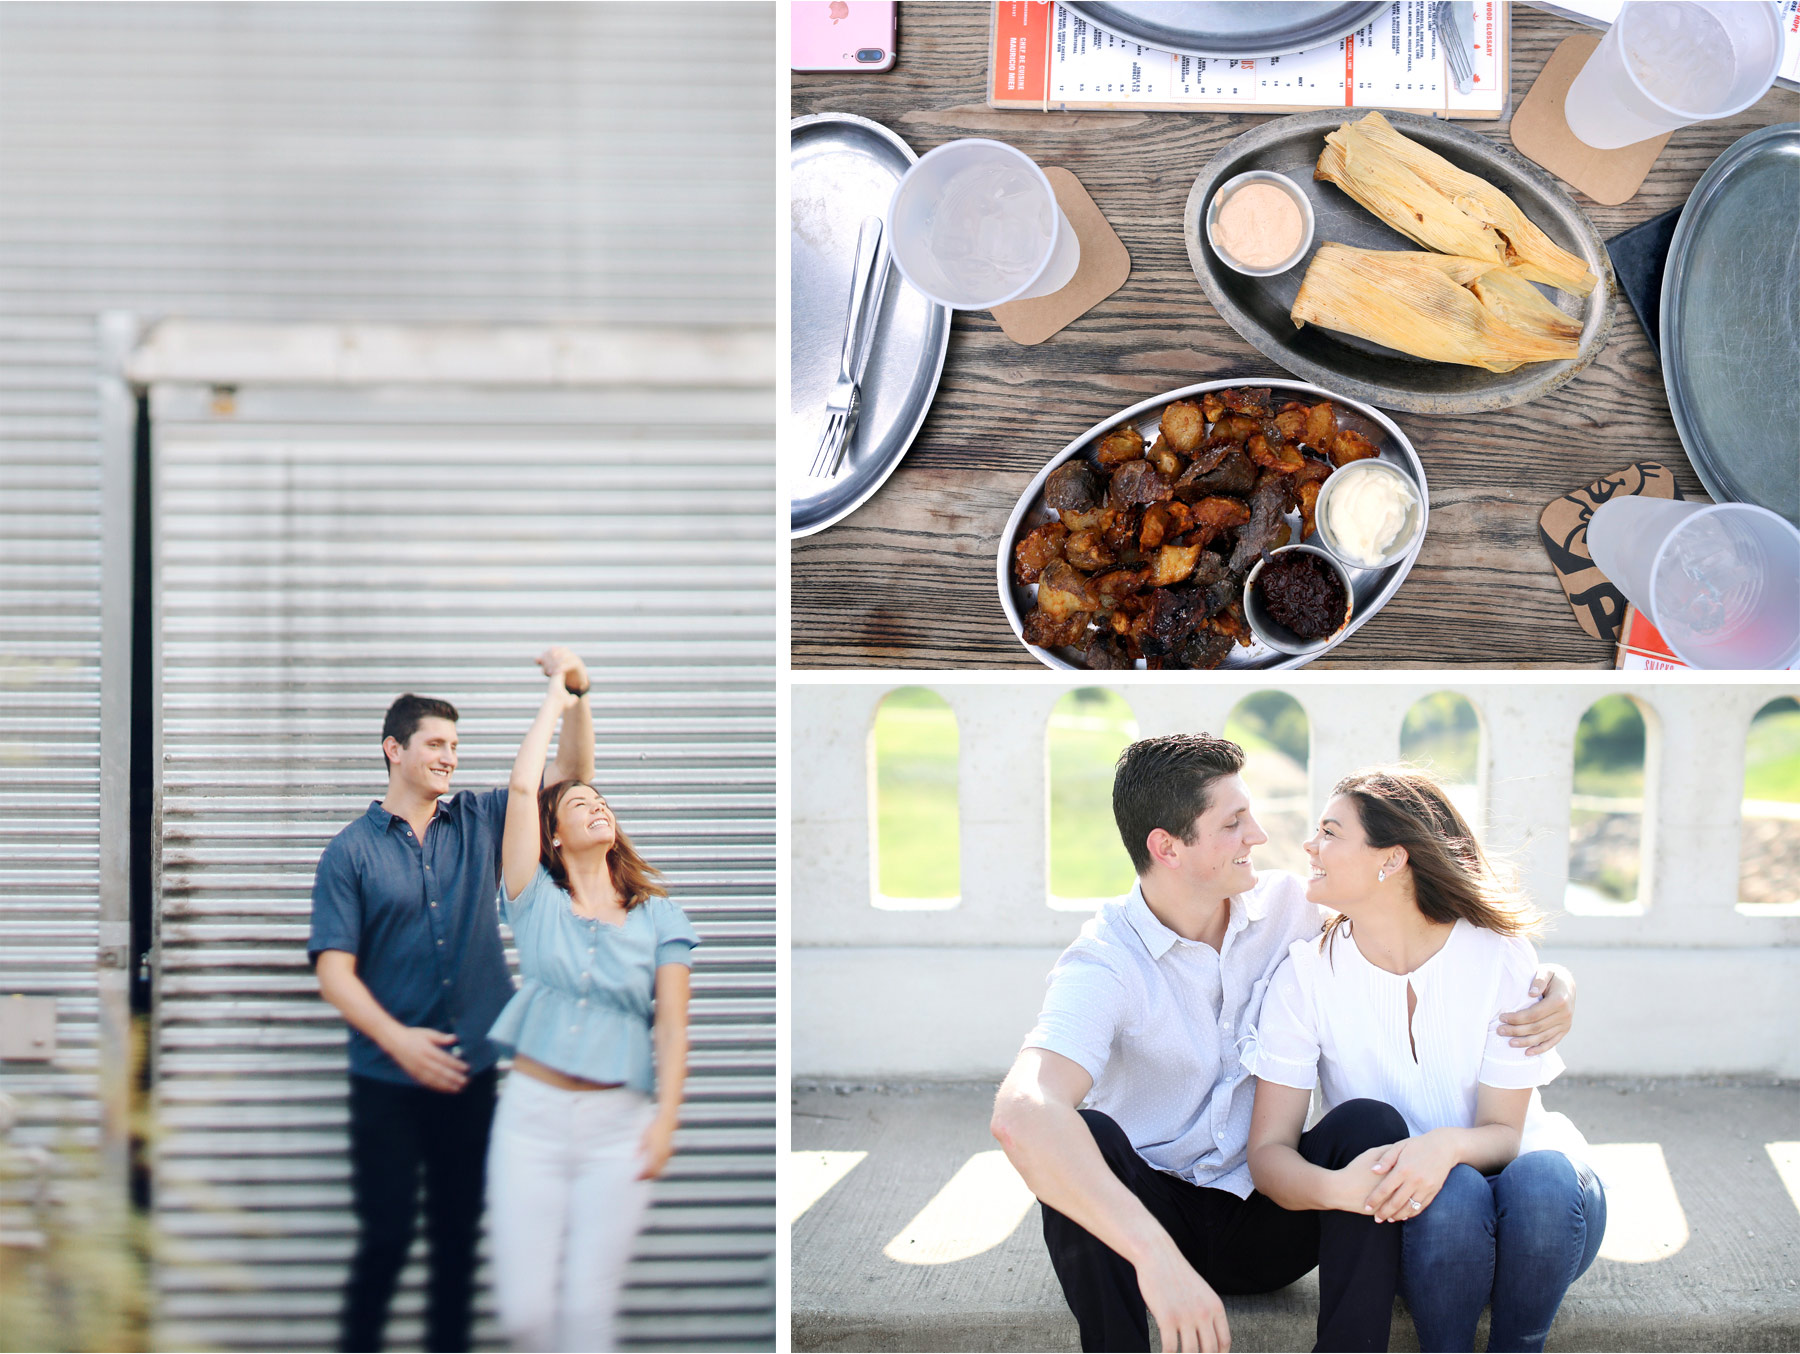 10-Fly-to-Me-Destination-Engagement-Session-Vick-Photography-Fort-Worth-Texas-Couple-BBQ-Maggie-and-Matt.jpg